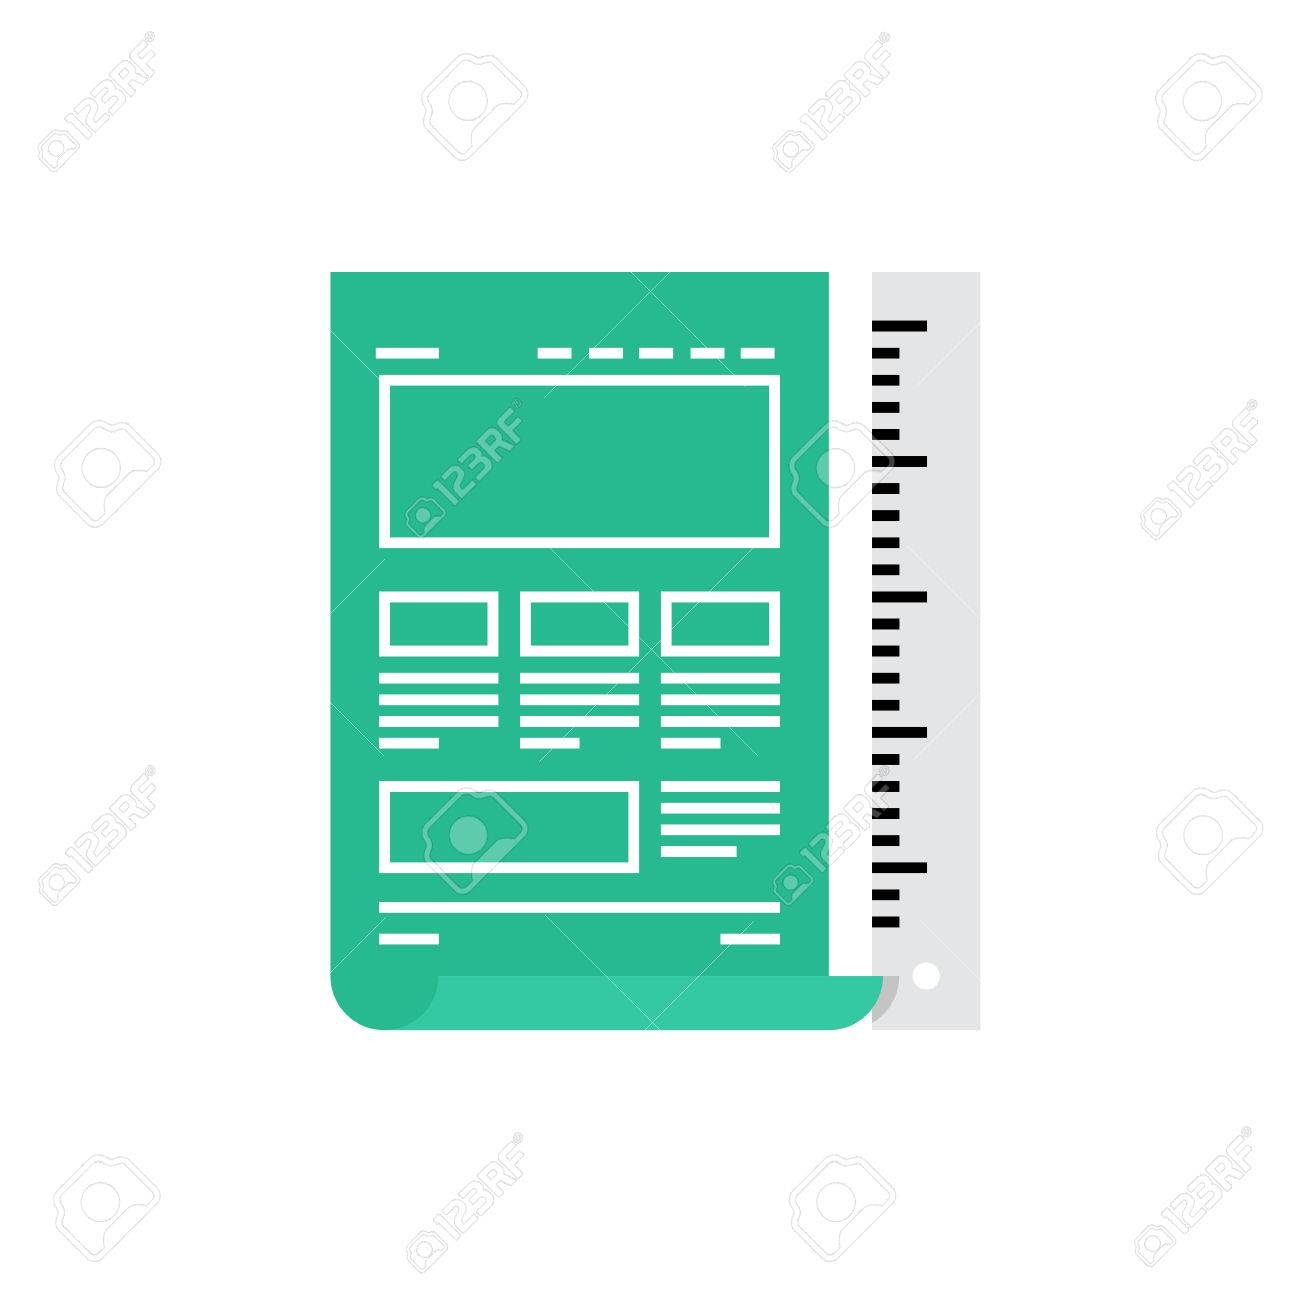 Modern icon of website blueprint web page sketching and web modern icon of website blueprint web page sketching and web development premium quality illustration malvernweather Gallery